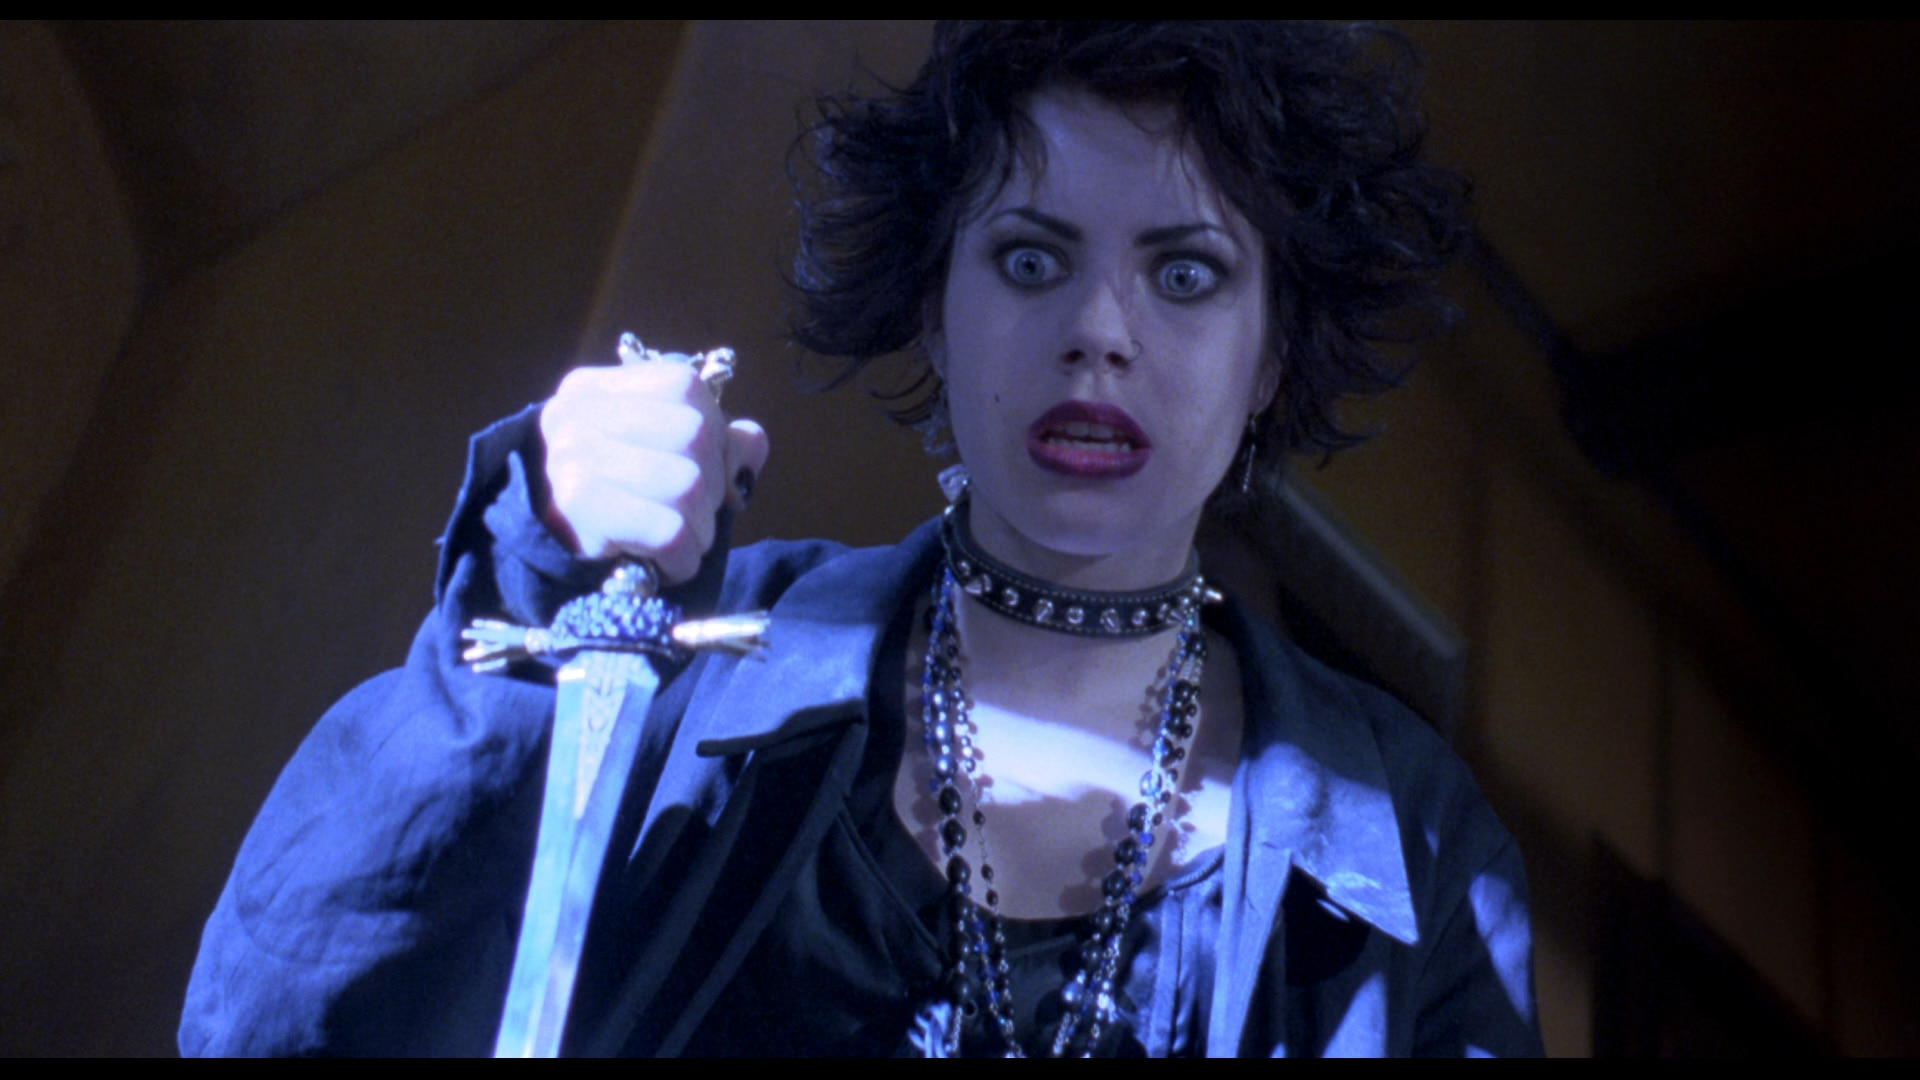 honeymoon director leigh janiak will remake the craft